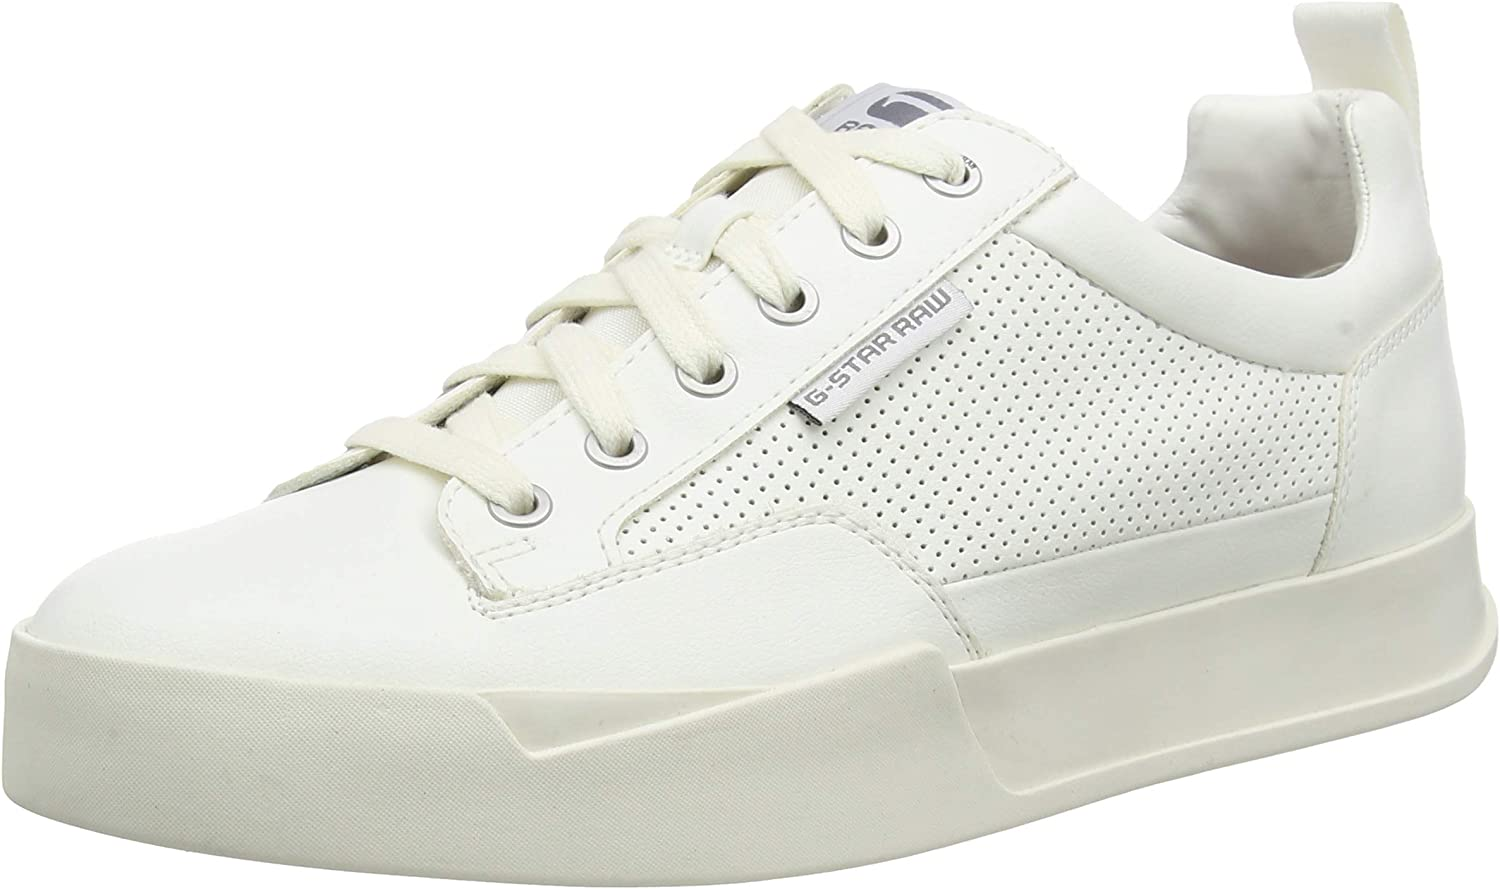 Spring new work G-Star Raw Men's Max 78% OFF Sneaker Trainers Low-Top